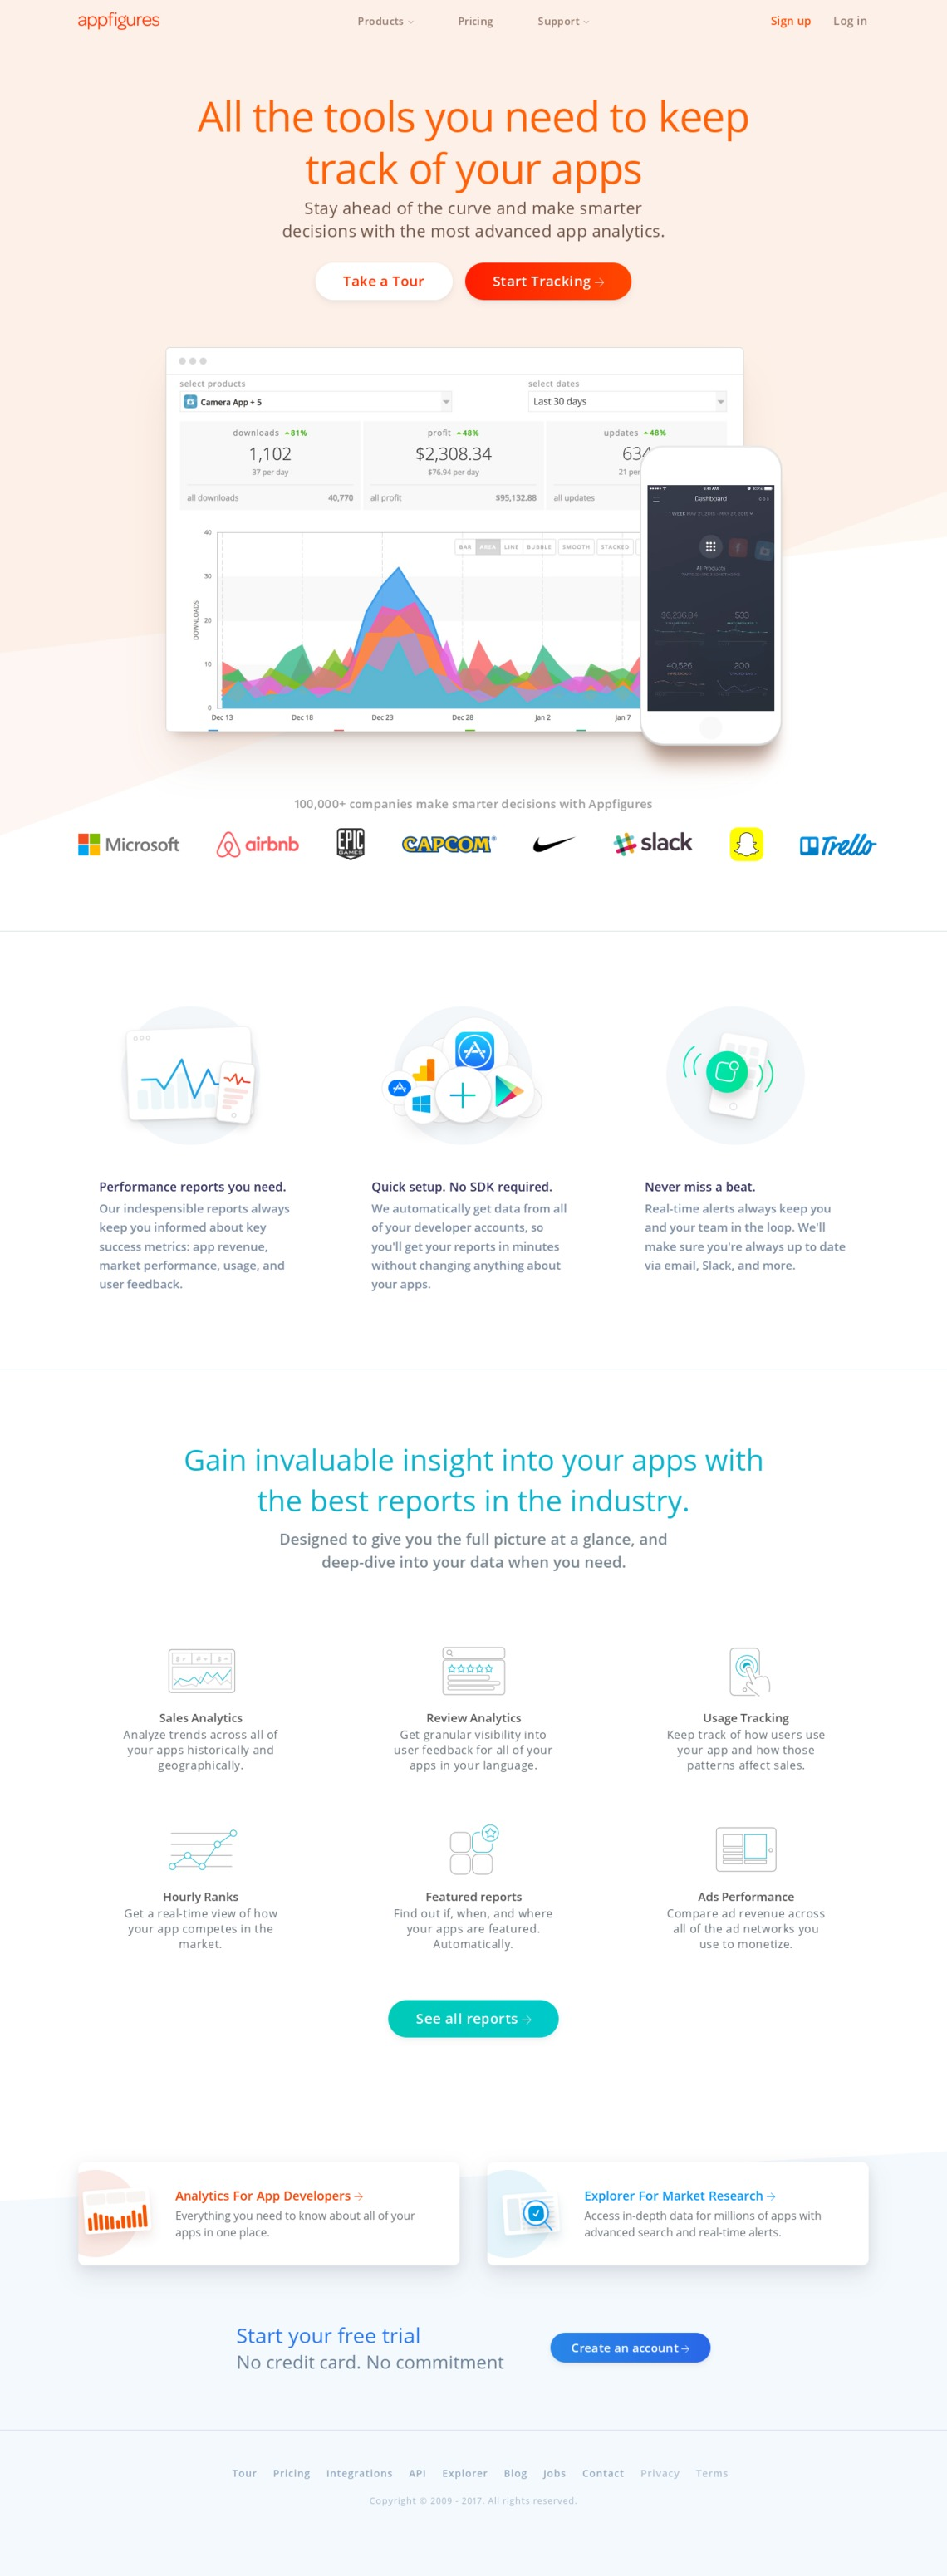 App Store Analytics by Appfigures